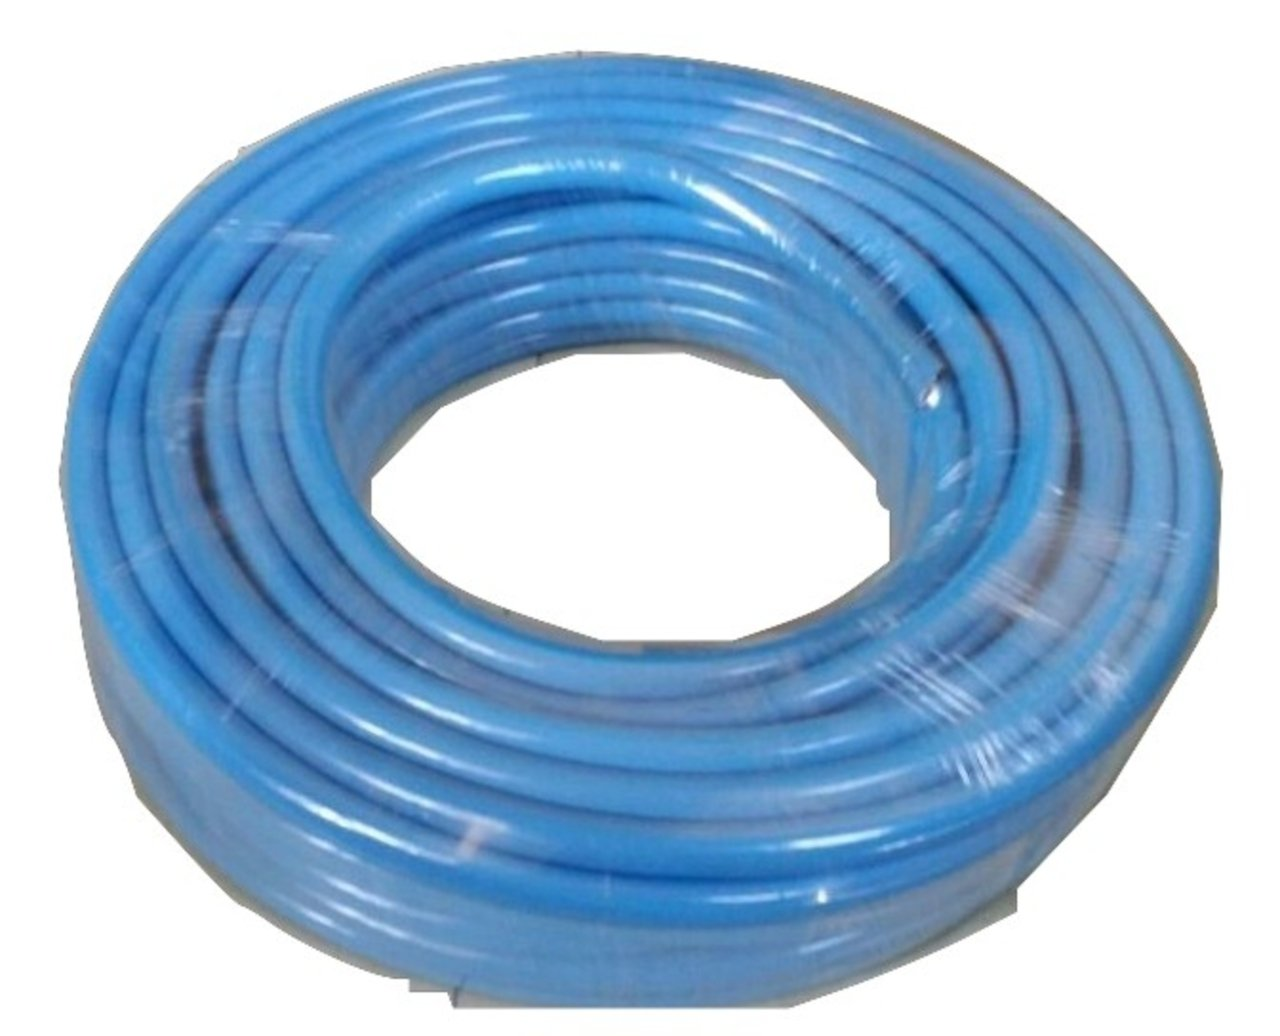 Superspeed Pvc Garden Hose Pipe Dd Blue 1 2 Length 30 Mtrs Amazon In Garden Outdoors